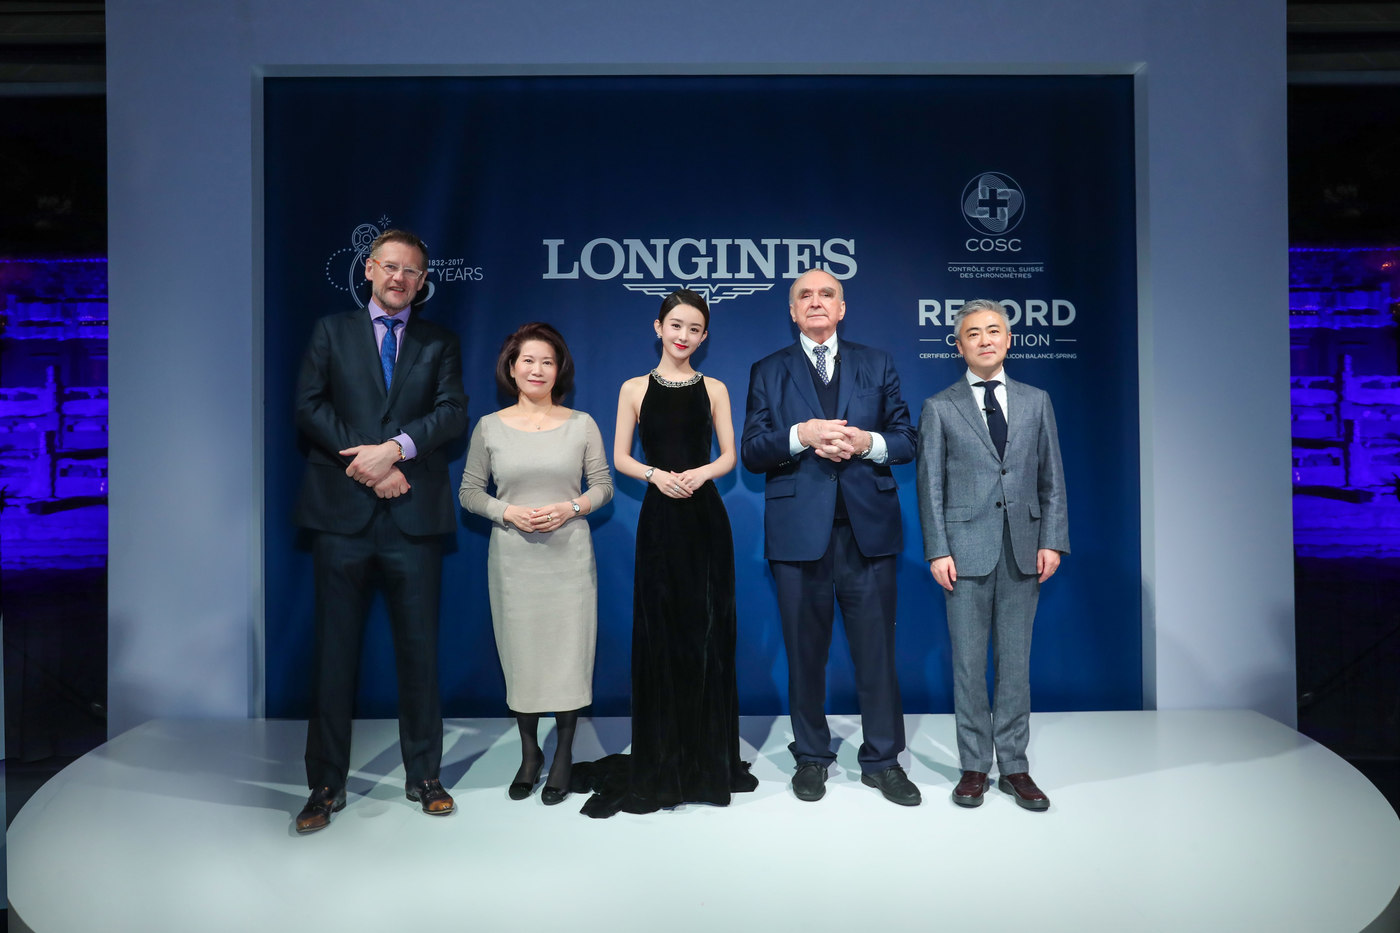 Longines Corporate Event: Longines launches new Record collection and celebrates its 185th Anniversary in Beijing 4